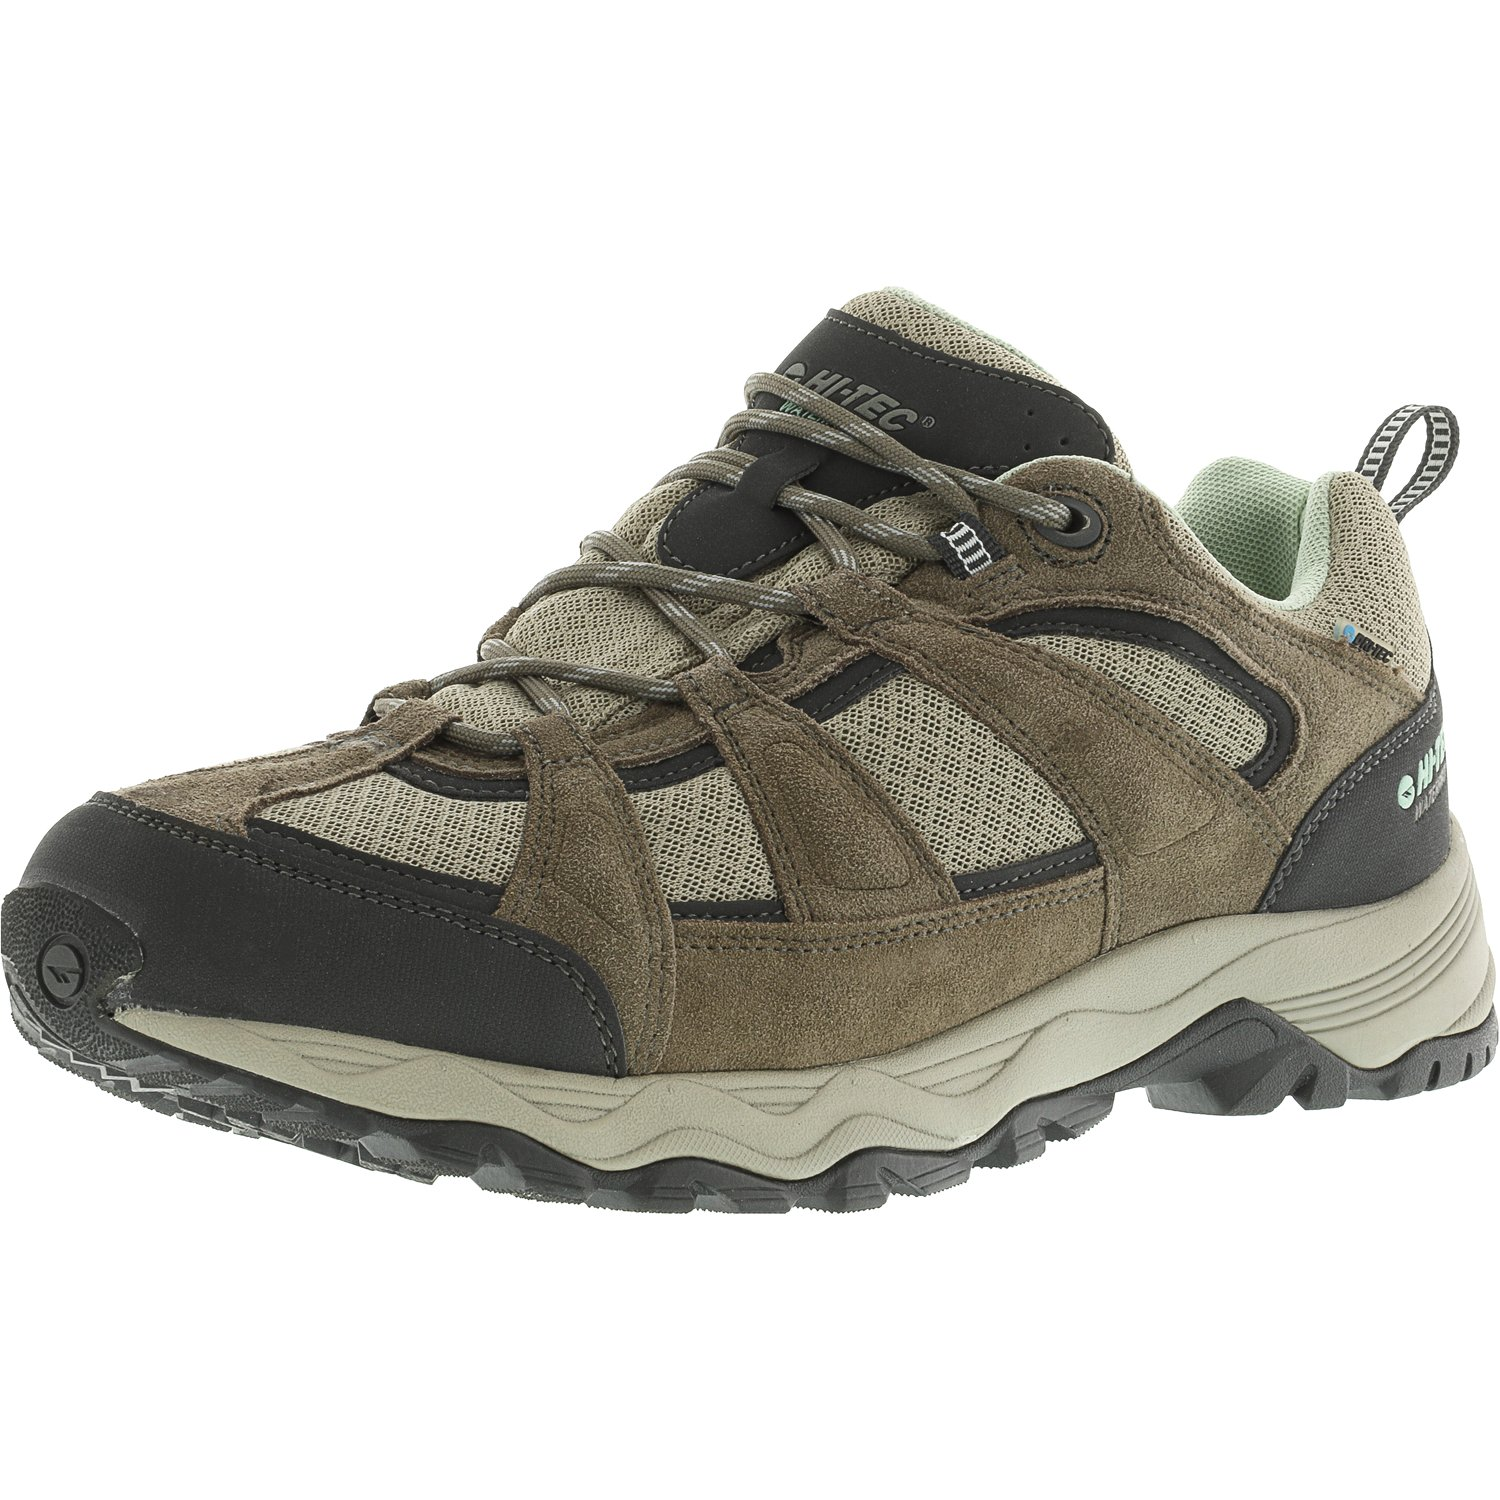 Hi-Tec Women's Perpetua Low Waterproof Taupe Ankle-High Hiking Shoe 8M by Hi-Tec